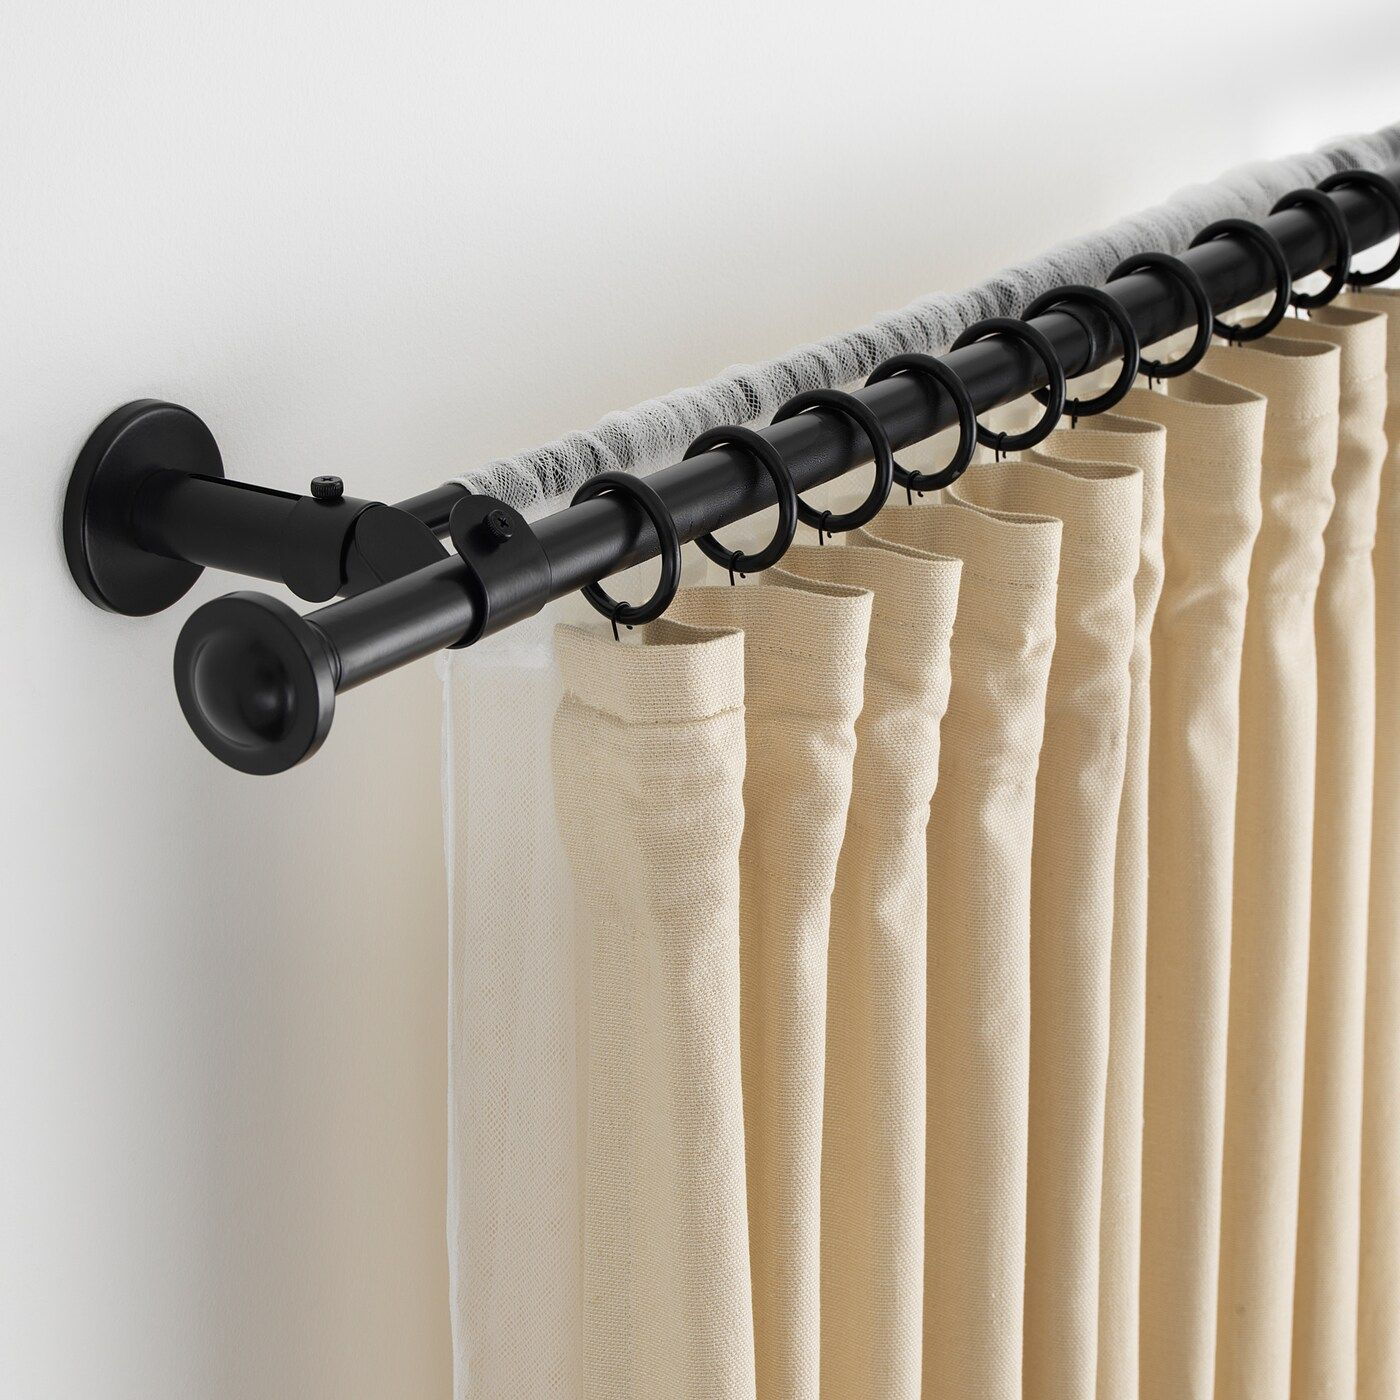 Ikea Storslagen Double Curtain Rod Set Black In 2020 Double